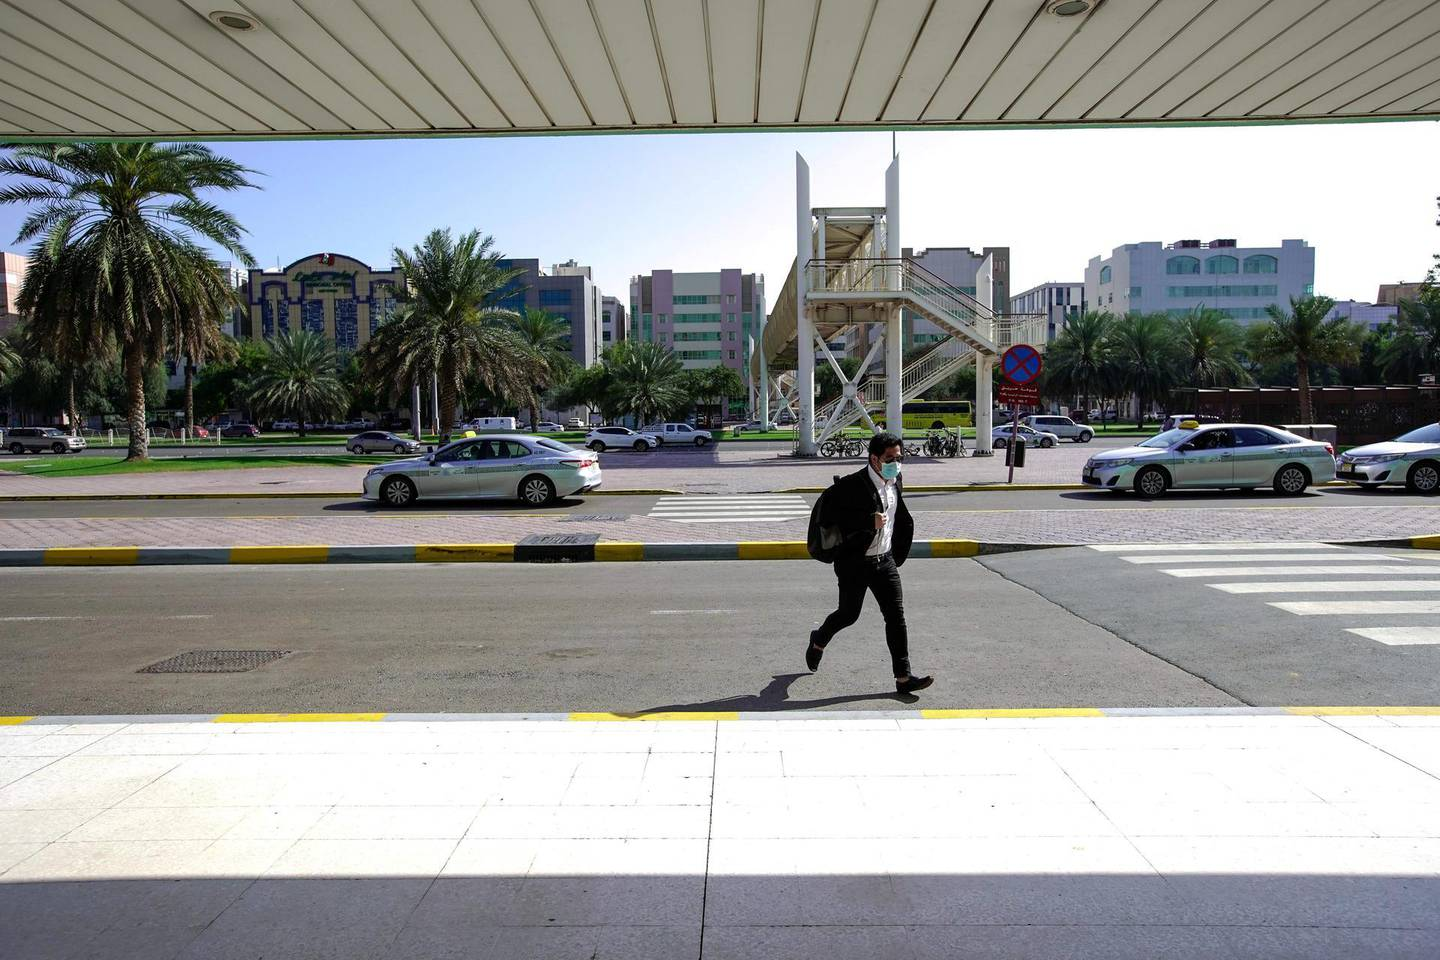 """Abu Dhabi, United Arab Emirates, March 24, 2020. Standalone: Coronavirus   A commuter crosses the street at the AUH Central Bus Terminal.  Both automobile and pedestrian traffic has noticeably decreased at downtown Abu Dhabi due to the strict """"stay at home"""" orders the UAE government has implemented to combat the spread of coronavirus.Victor Besa / The NationalSection:  NA"""